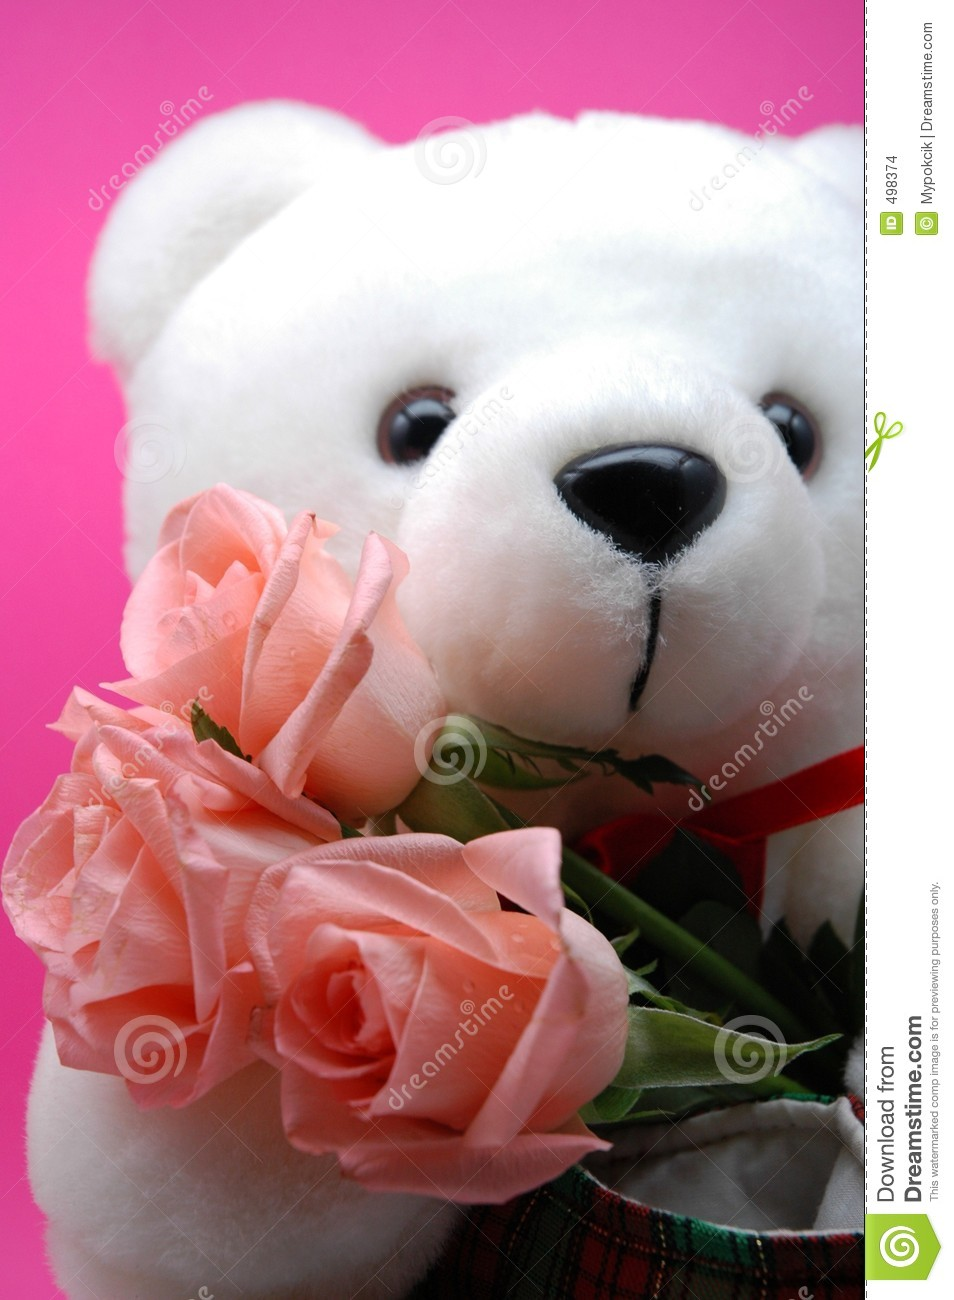 White teddy bear and pink roses